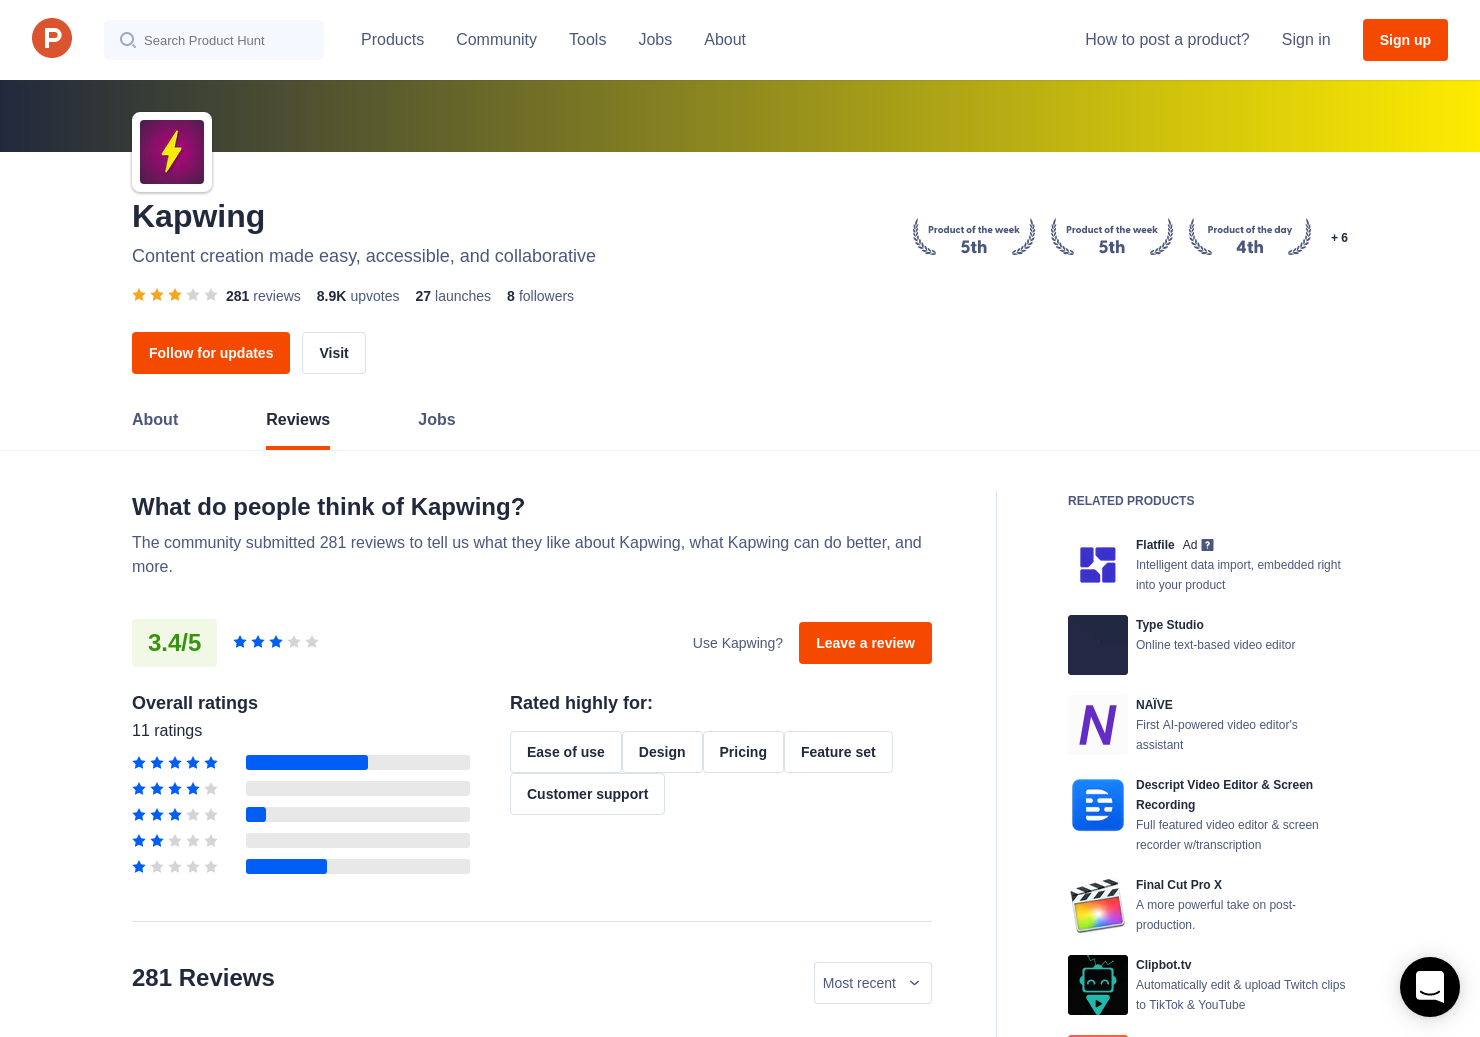 Kapwing Stop Motion Video Maker Reviews - Pros, Cons and Rating